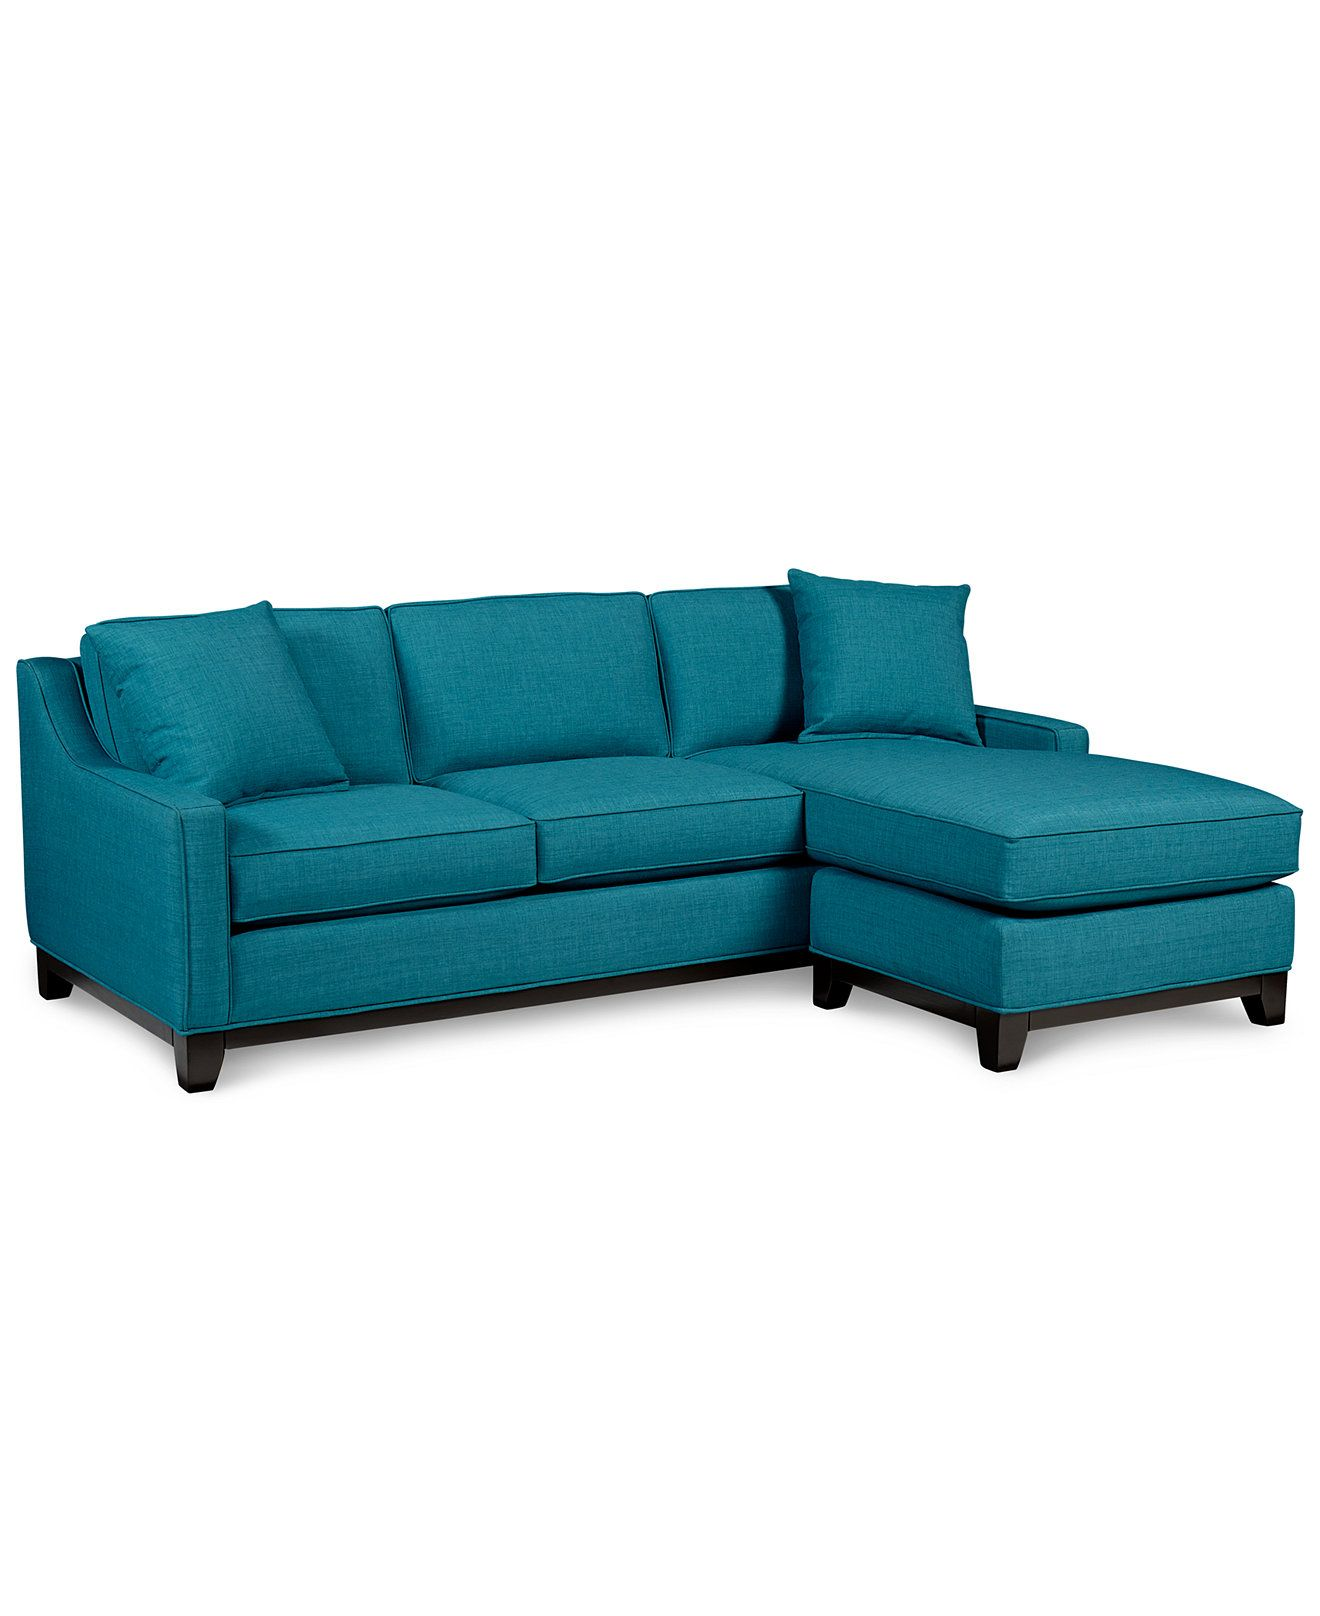 Keegan Fabric 2 Piece Sectional Sofa Shop All Living Room